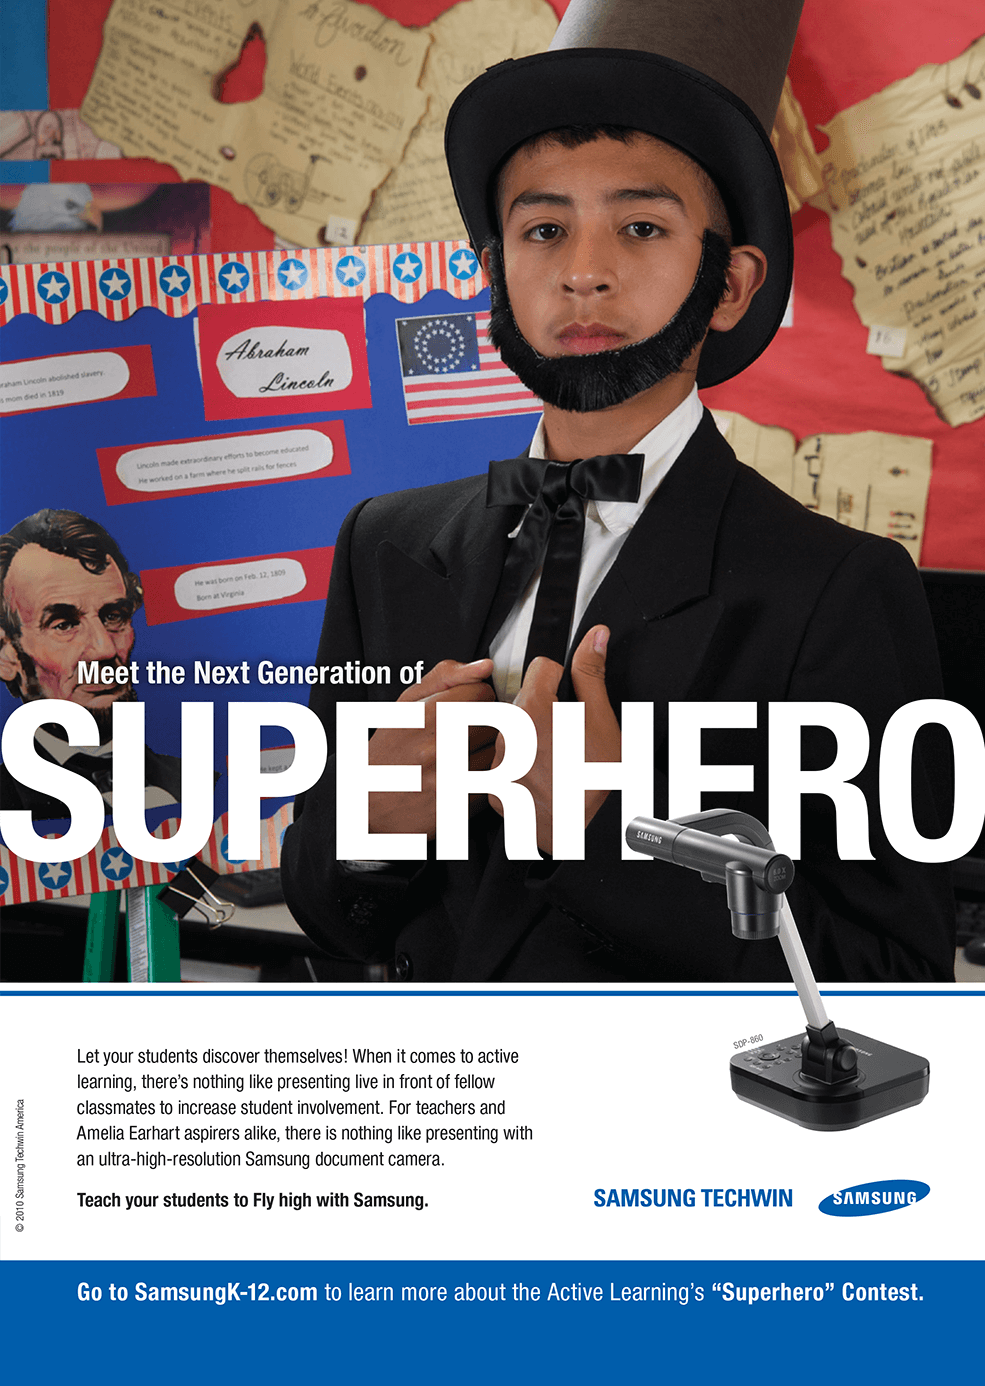 Samsung - Superhero - Honest Abe - Integrated Marketing